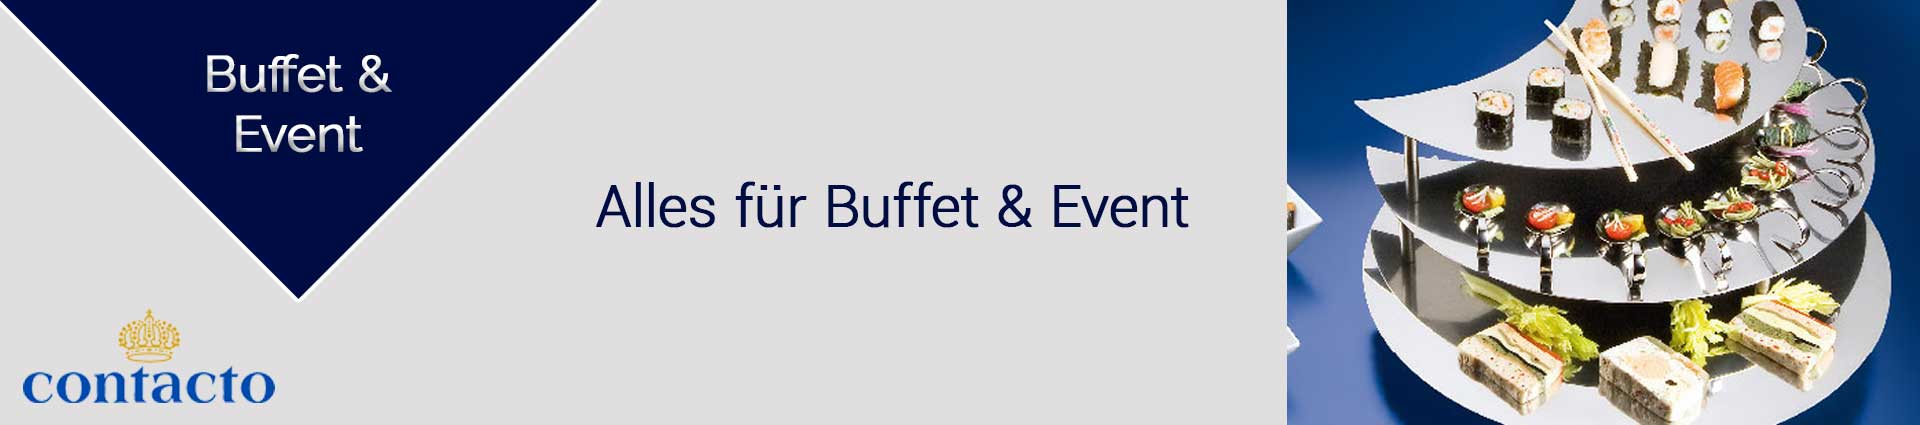 Contacto Buffet und Event Banner